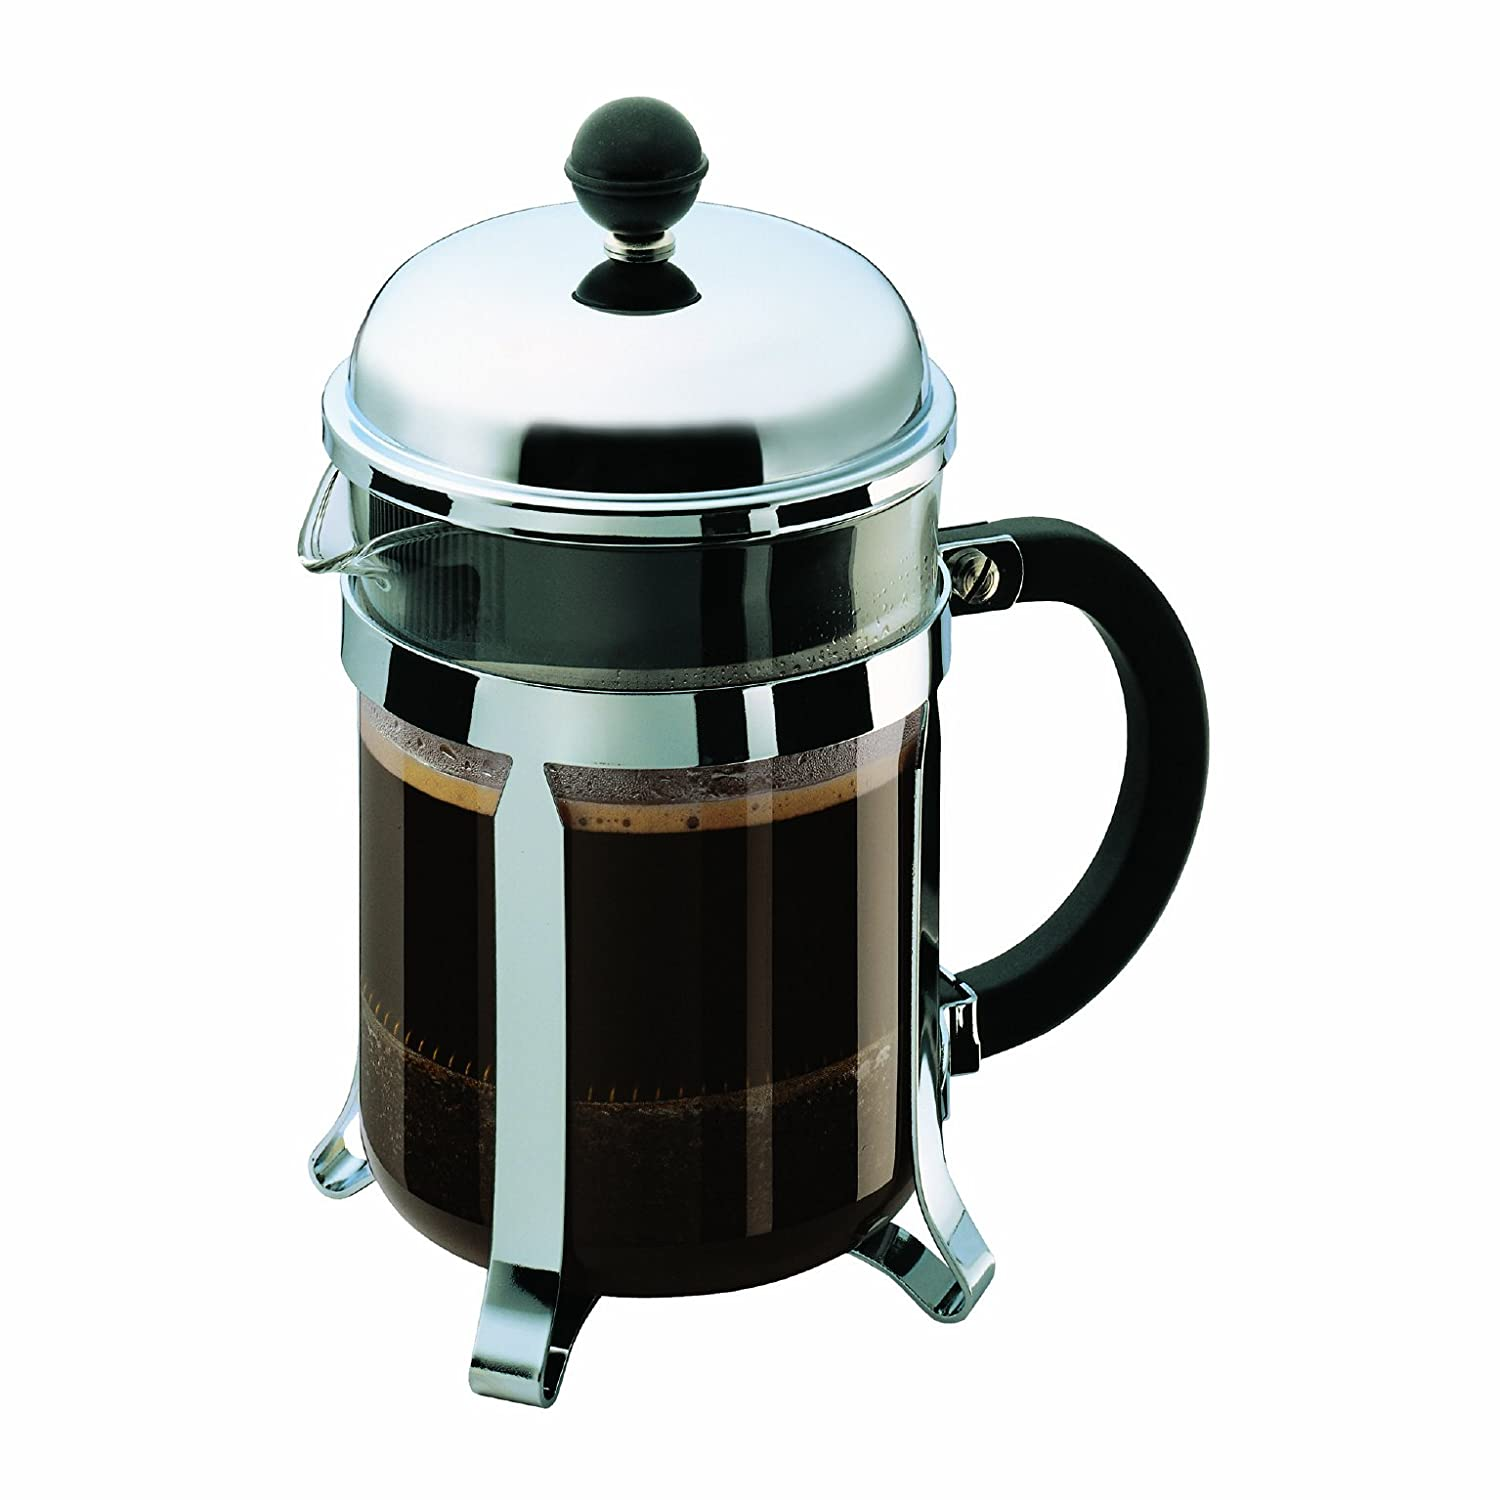 Bodum Chambord 4 Cup Shatterproof French Press Coffemaker, 0.5 l, 17-Ounce